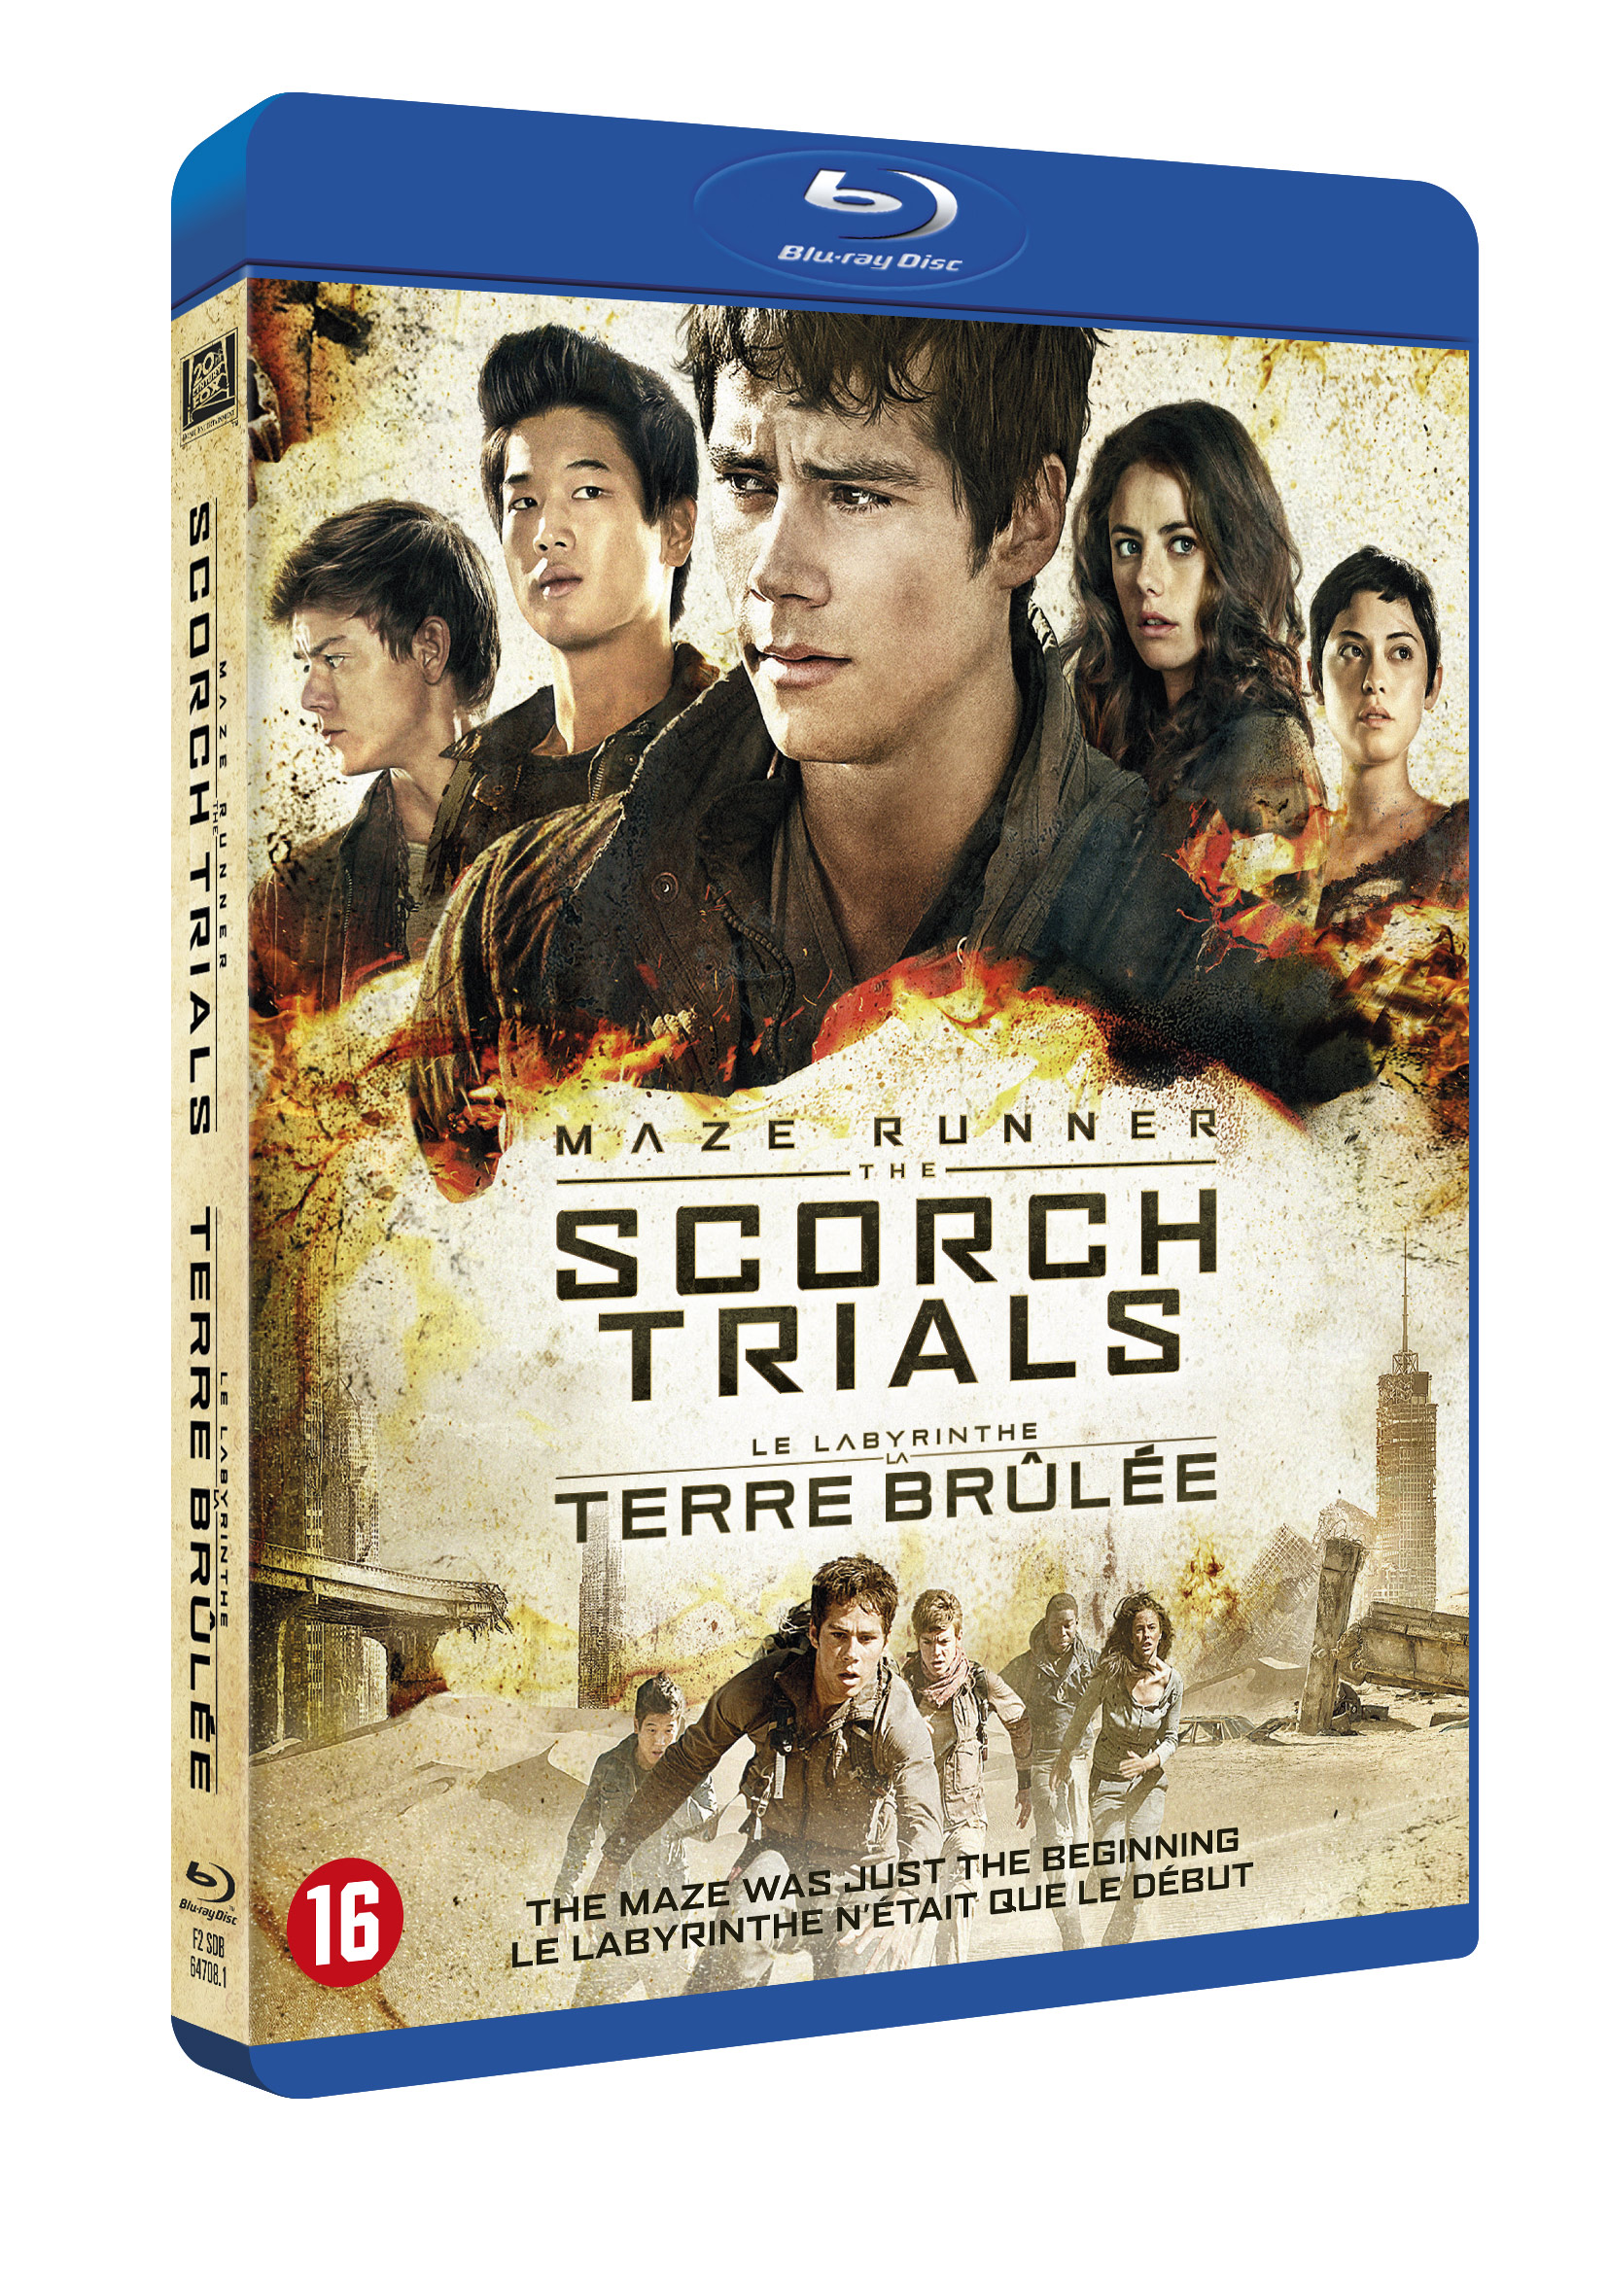 Maze Runner: The Scorch Trials Blu-ray